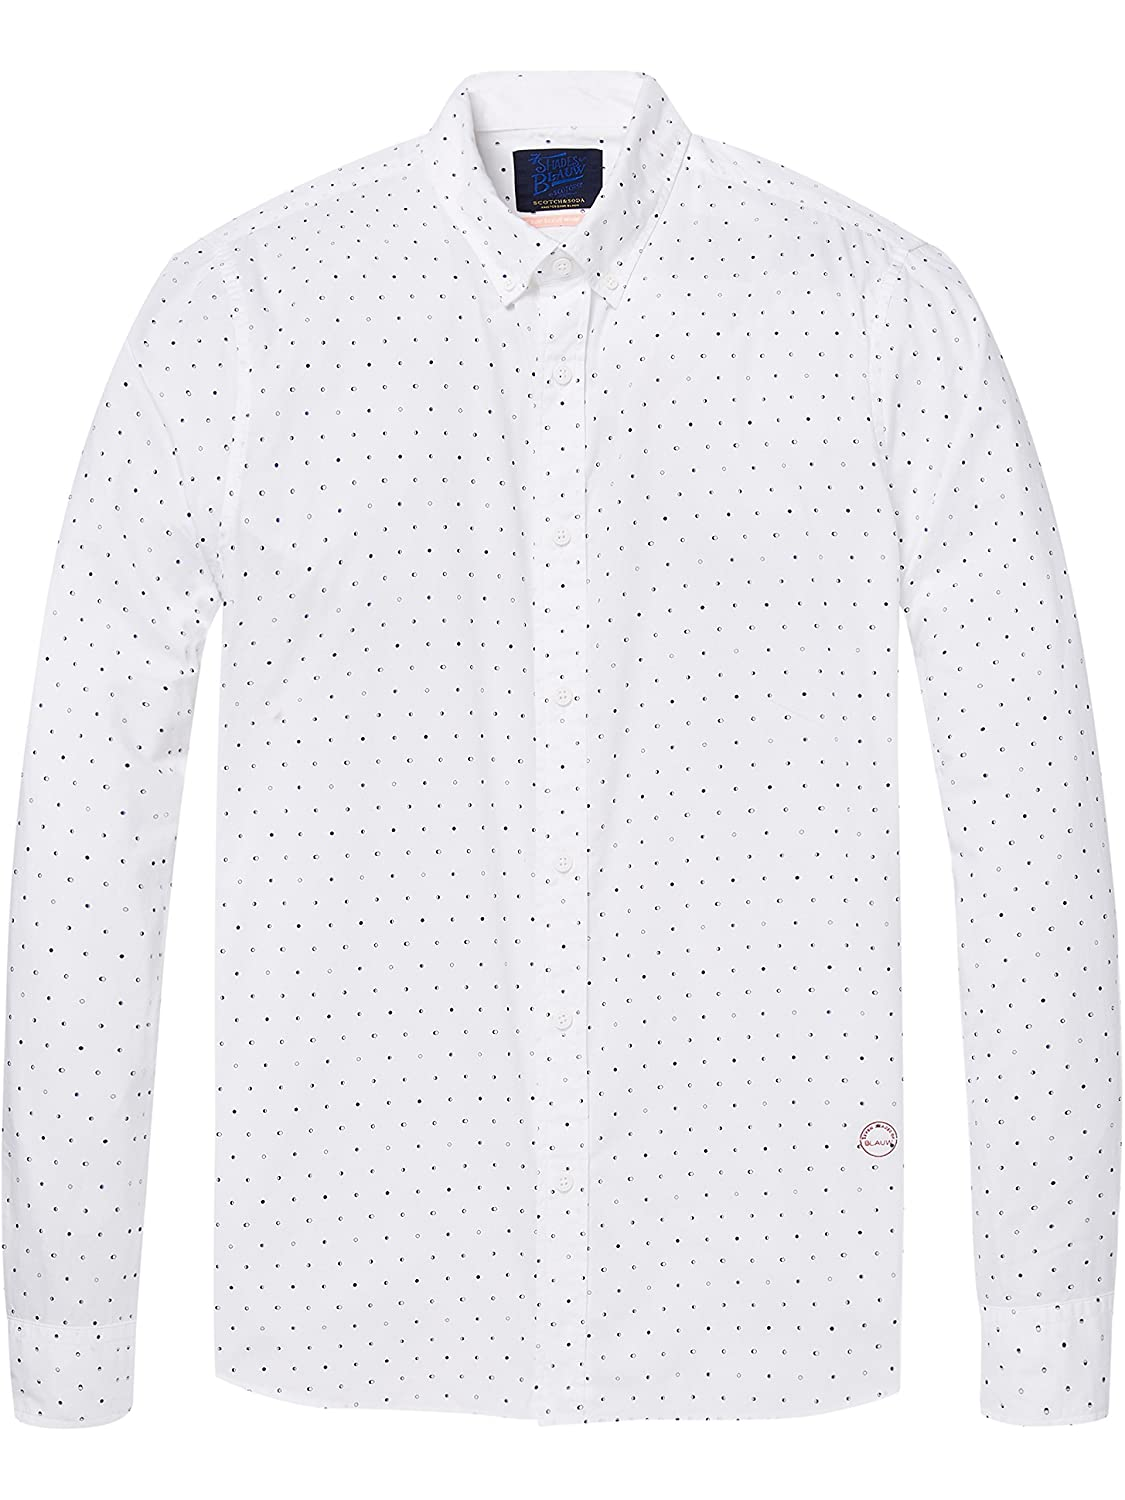 Scotch & Soda AMS Slim Fit Simple Lightweight Printed Camisa para Hombre